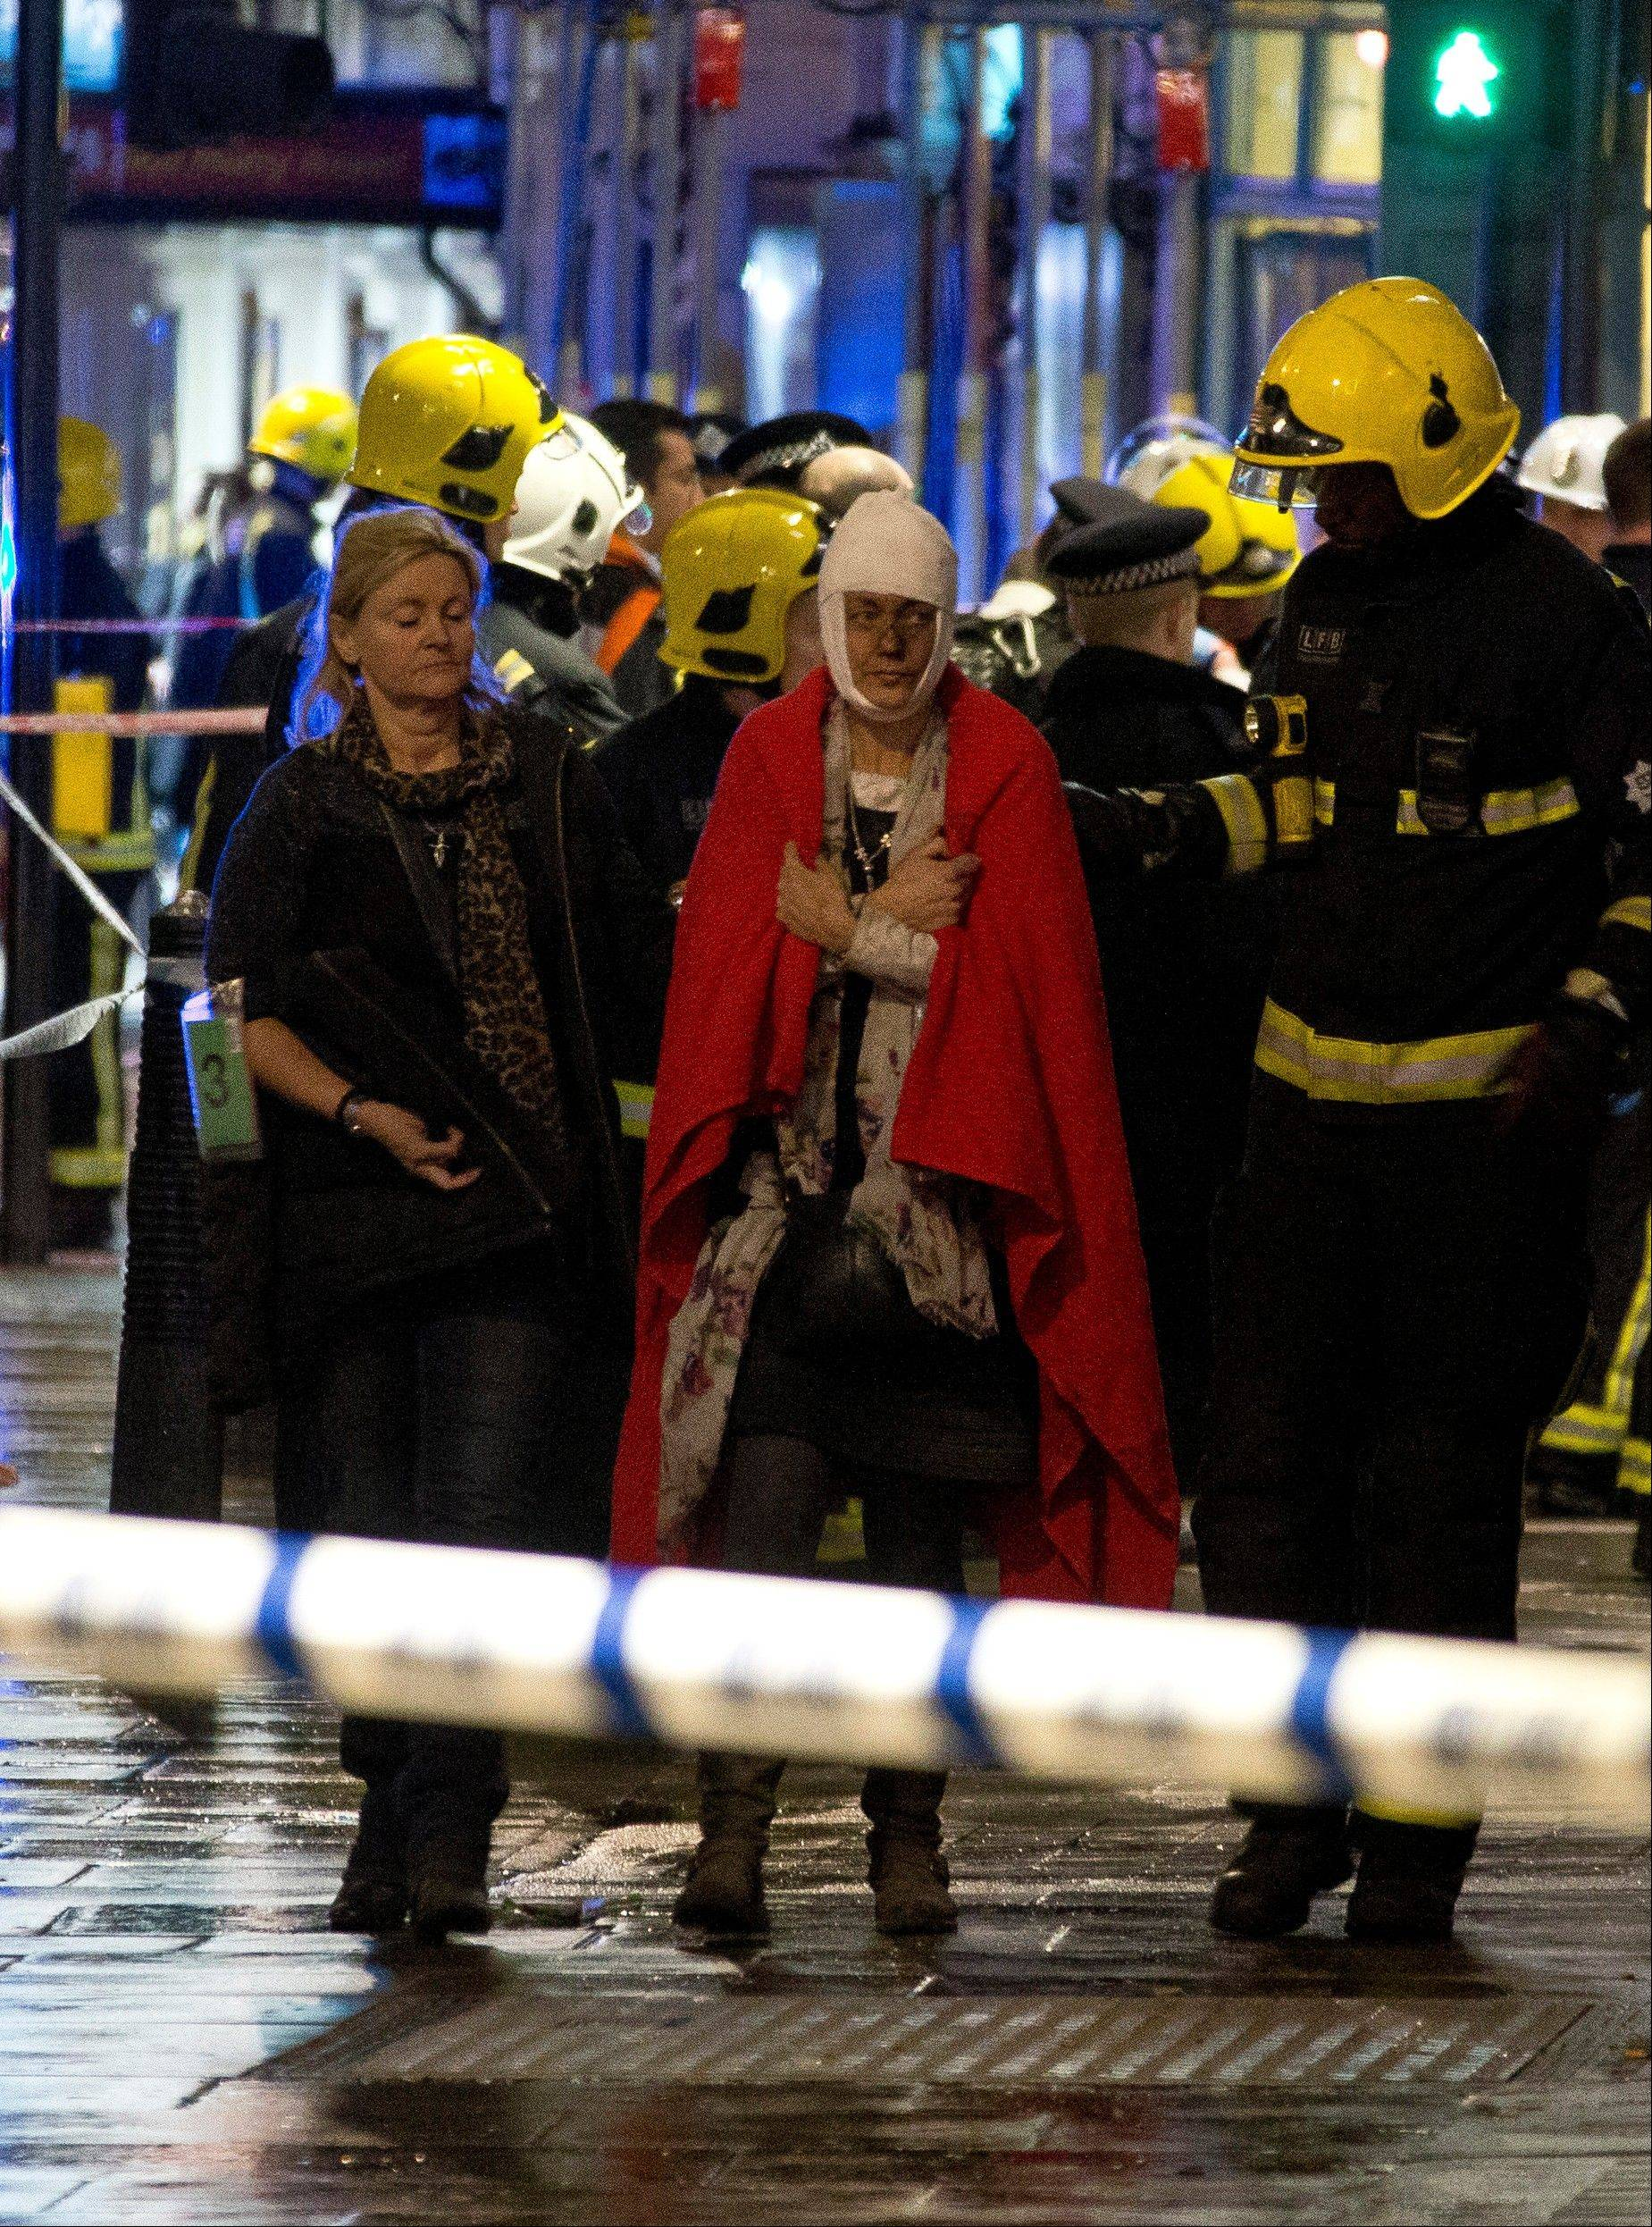 Over 75 injured in partial London theater collapse